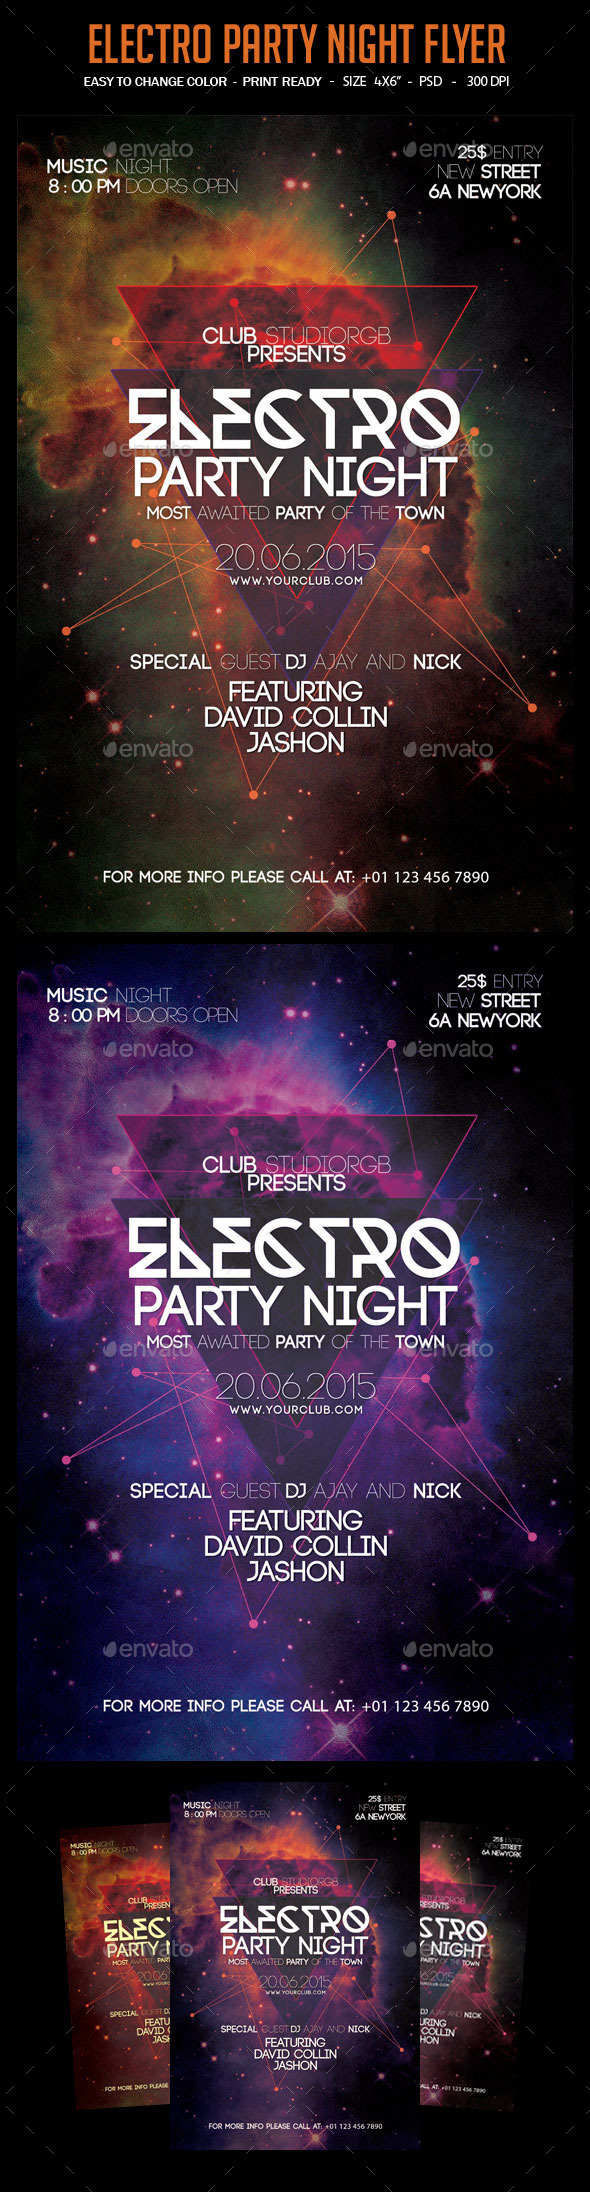 Electro Party Night Flyer - Clubs & Parties Events